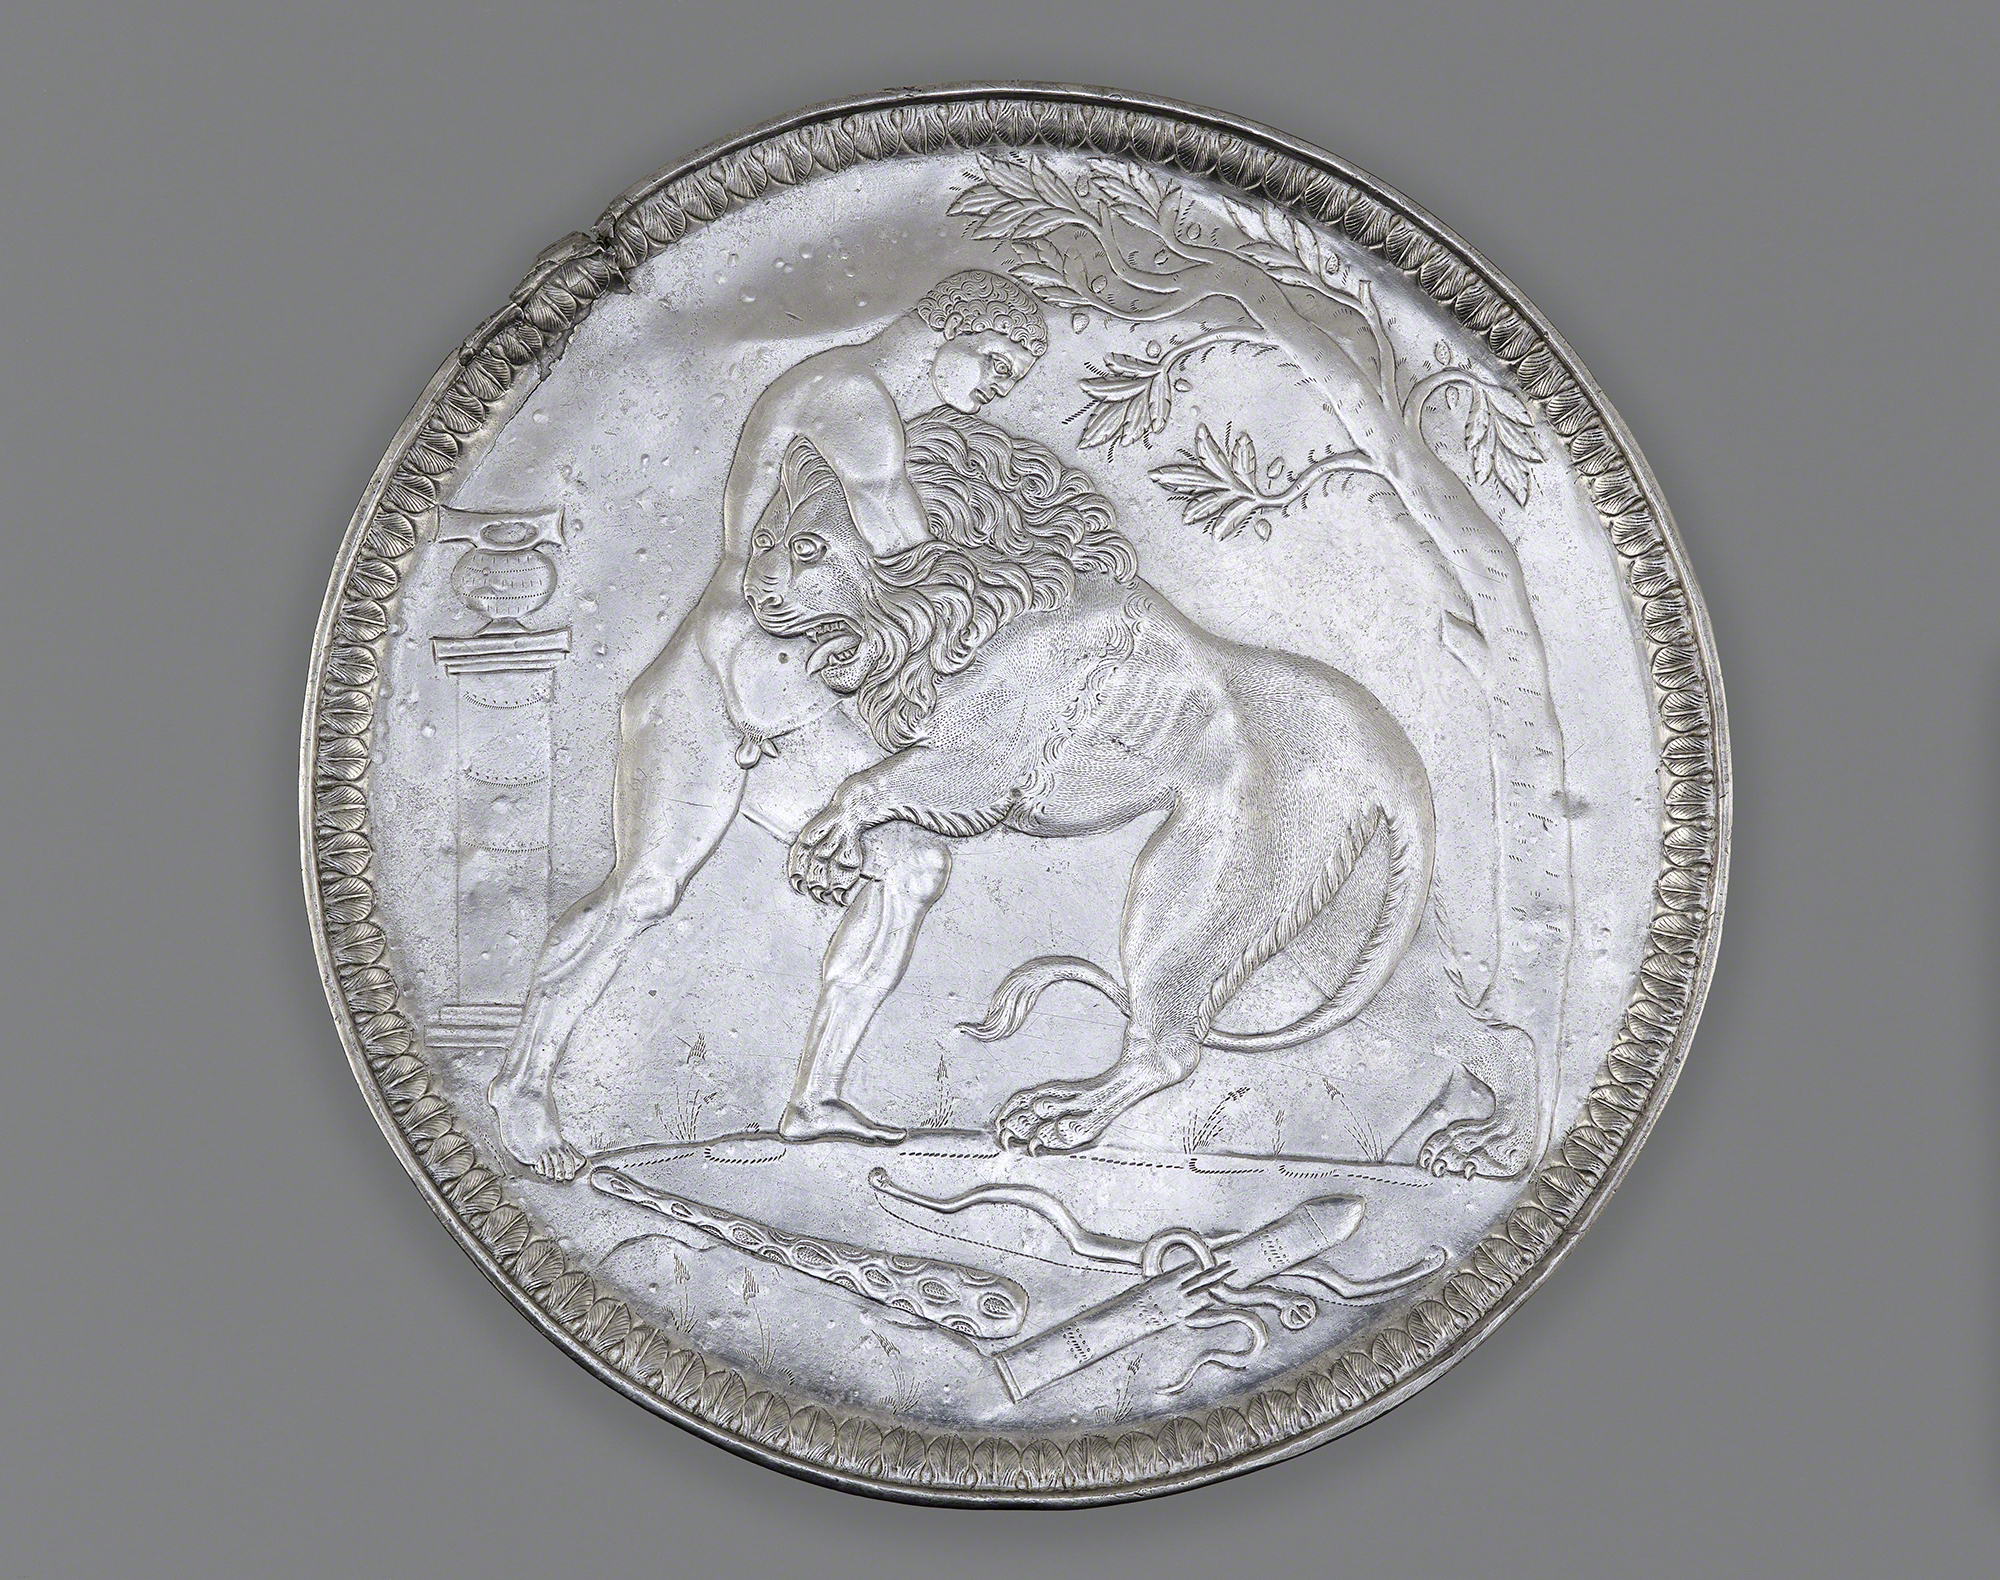 4. Plate with Hercules Wrestling the Nemean Lion, 500-600 A.D. Silver. Cabinet de.Médailes of the Bibliothèque nationale de France, Département des monnaies et antiques, Paris.